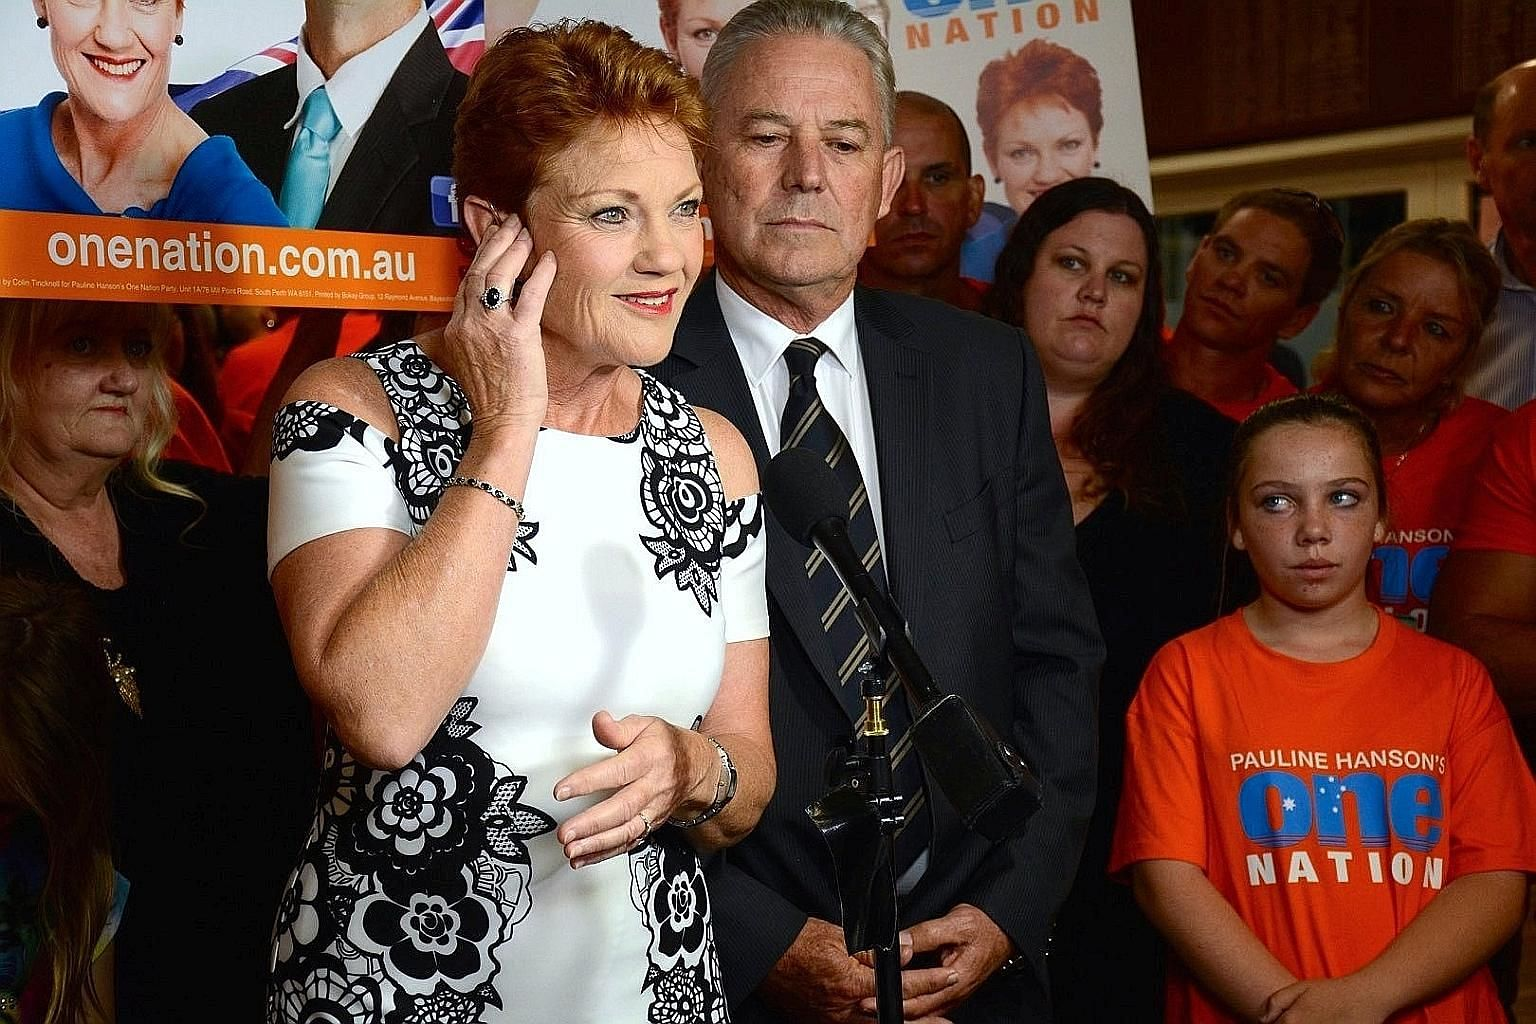 Ms Hanson at a One Nation election function in Perth, Western Australia, on Saturday. Despite the poor result for her party, she showed no sign of giving up on her far-flung ambitions. She even denied her party had floundered and insisted they had do